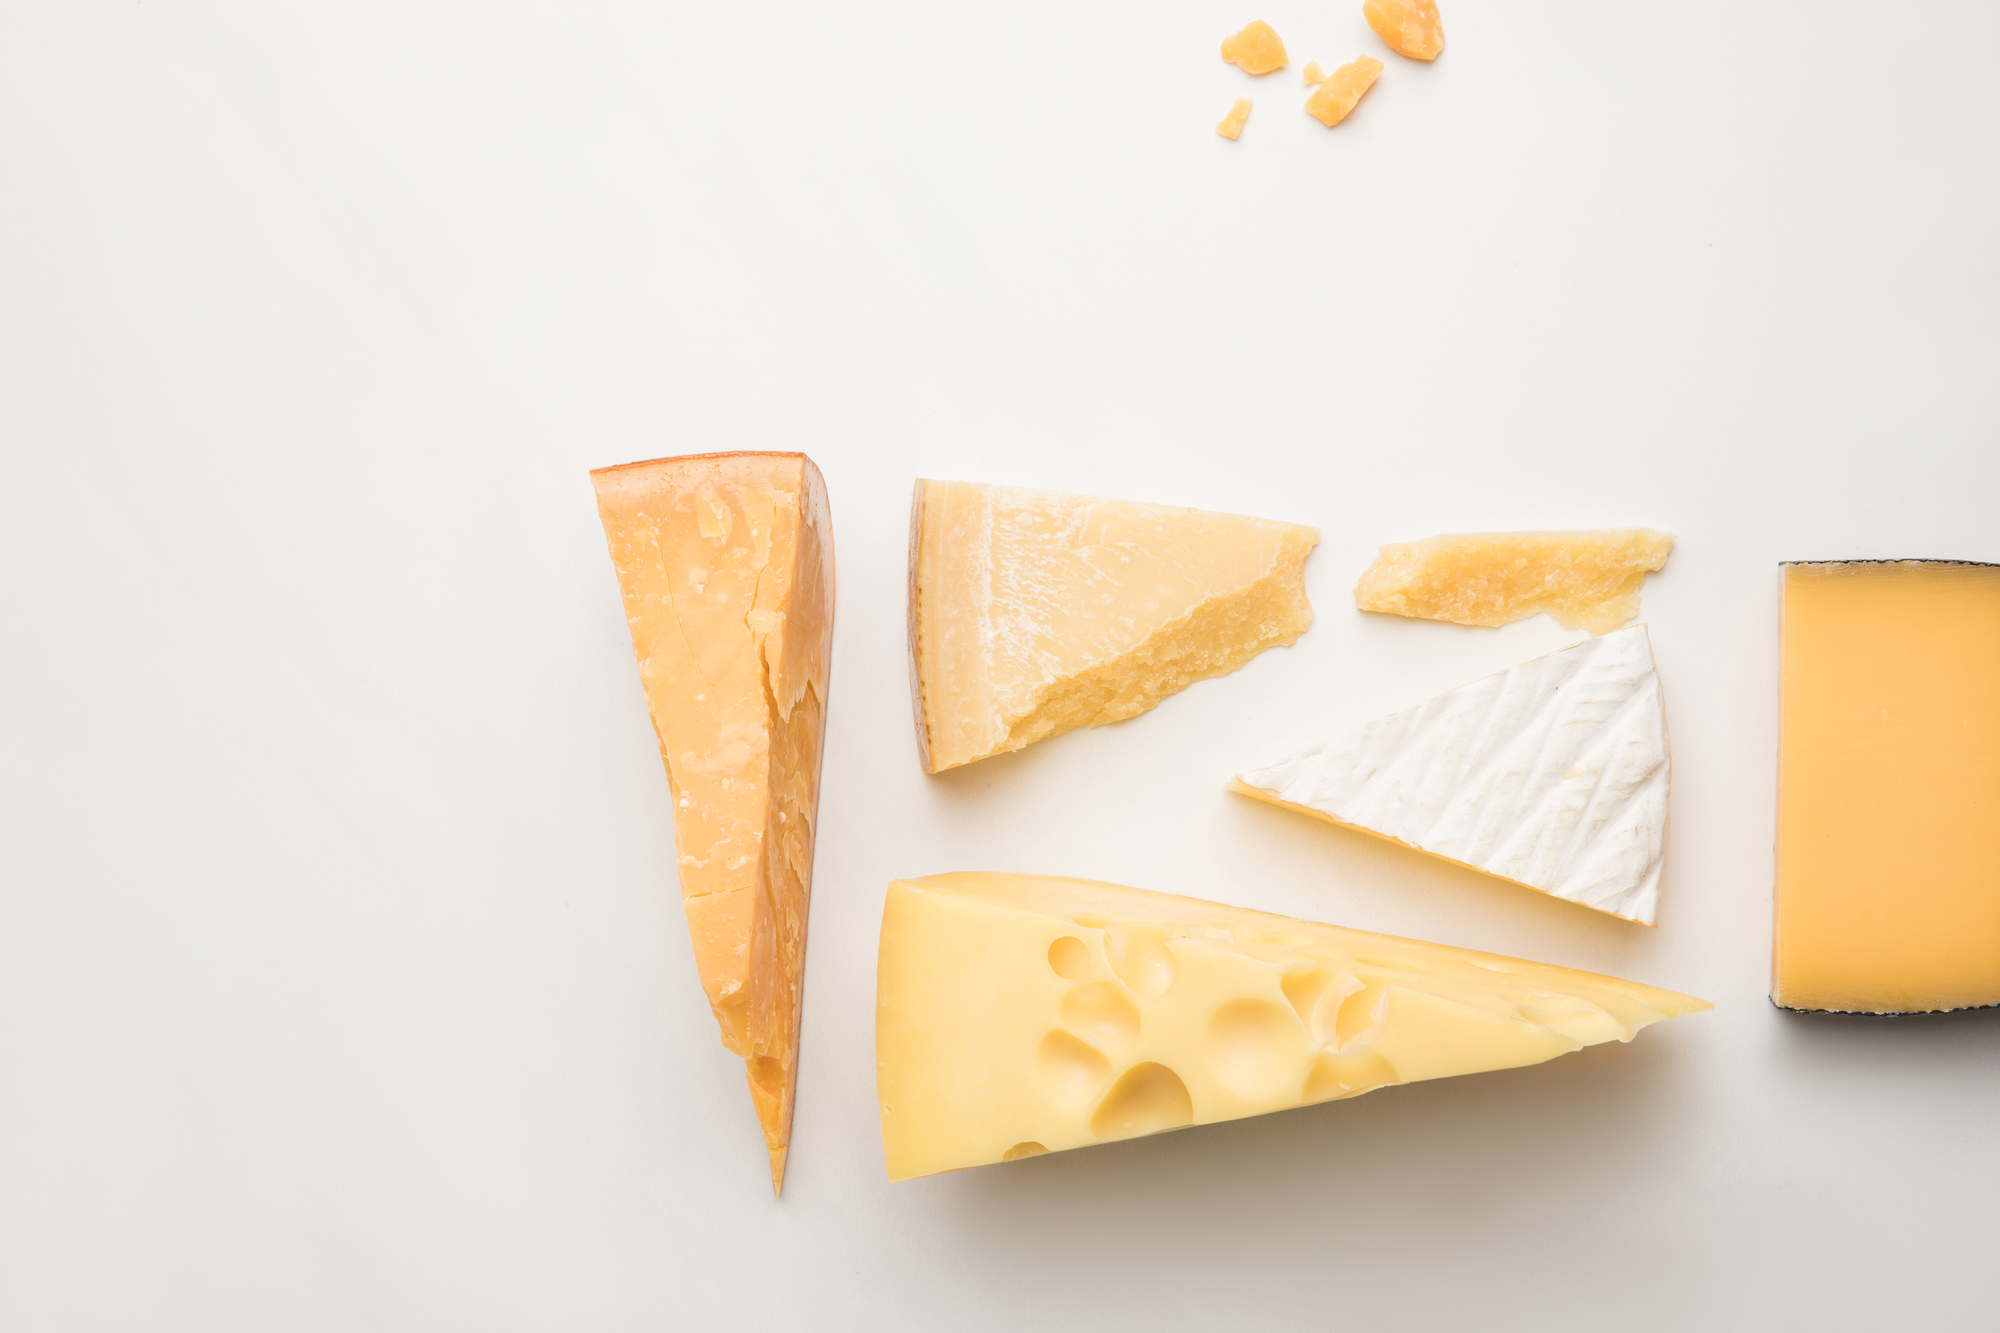 Cheeses - Histamine Intolerance. An Overlooked Cause For Your Nagging Symptoms?